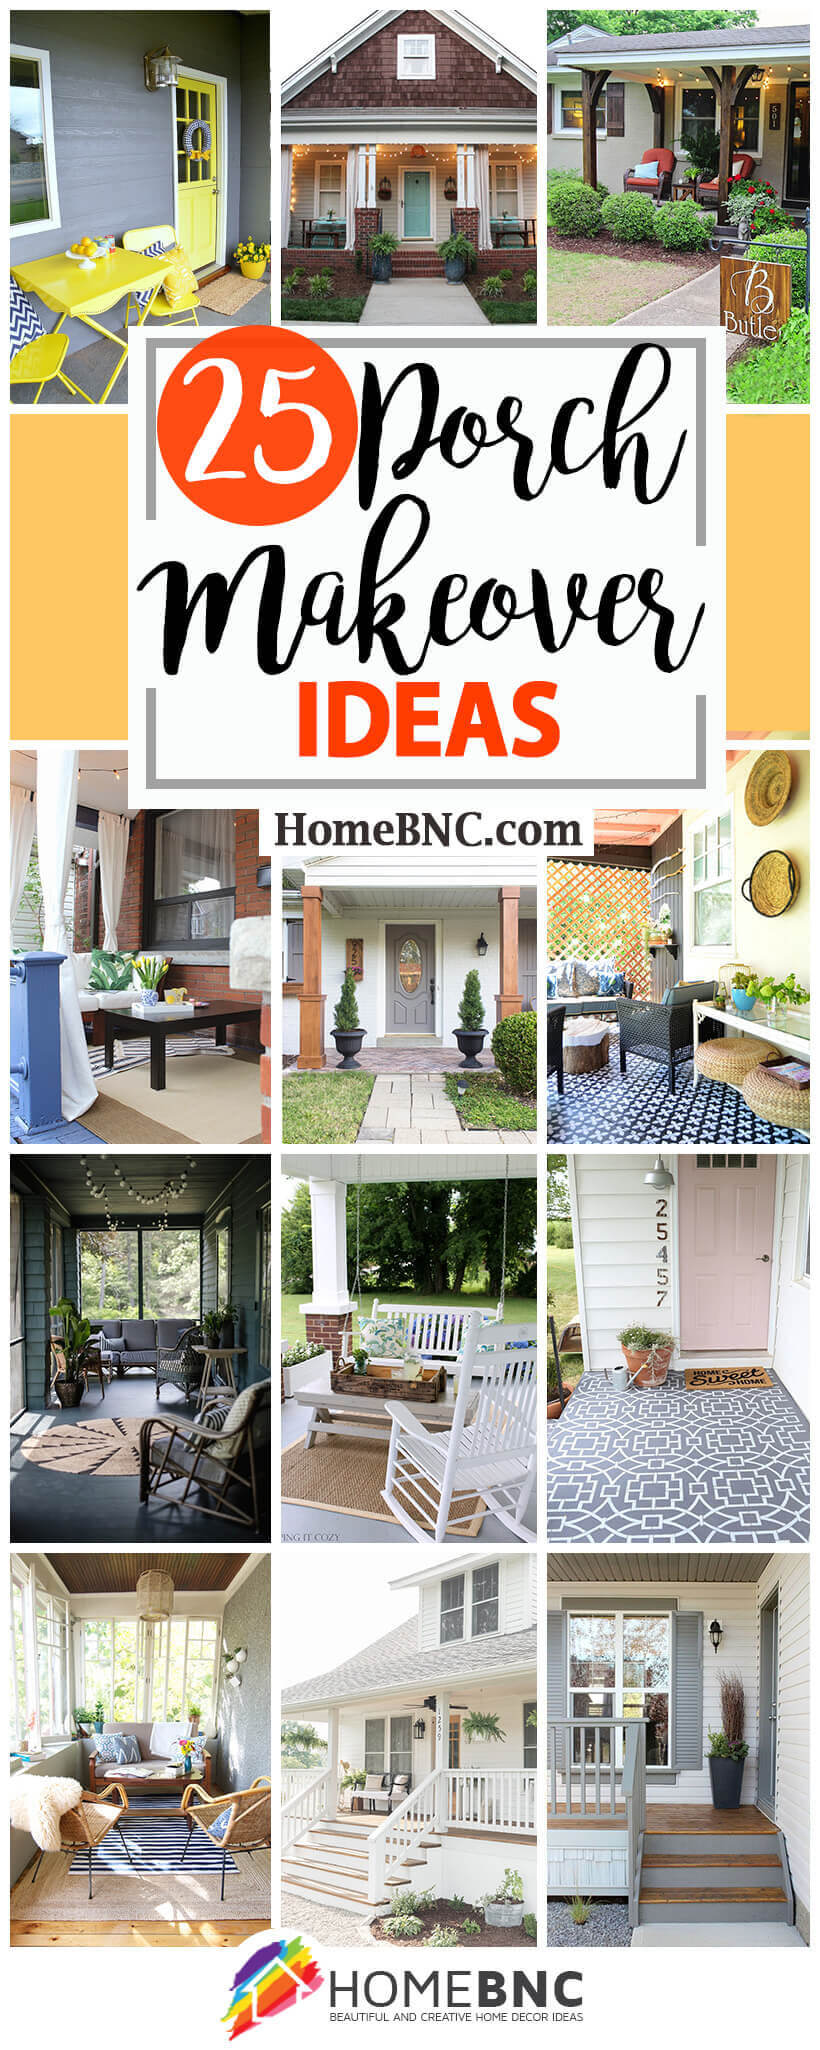 14 Best Porch Makeover Ideas and Projects for 14